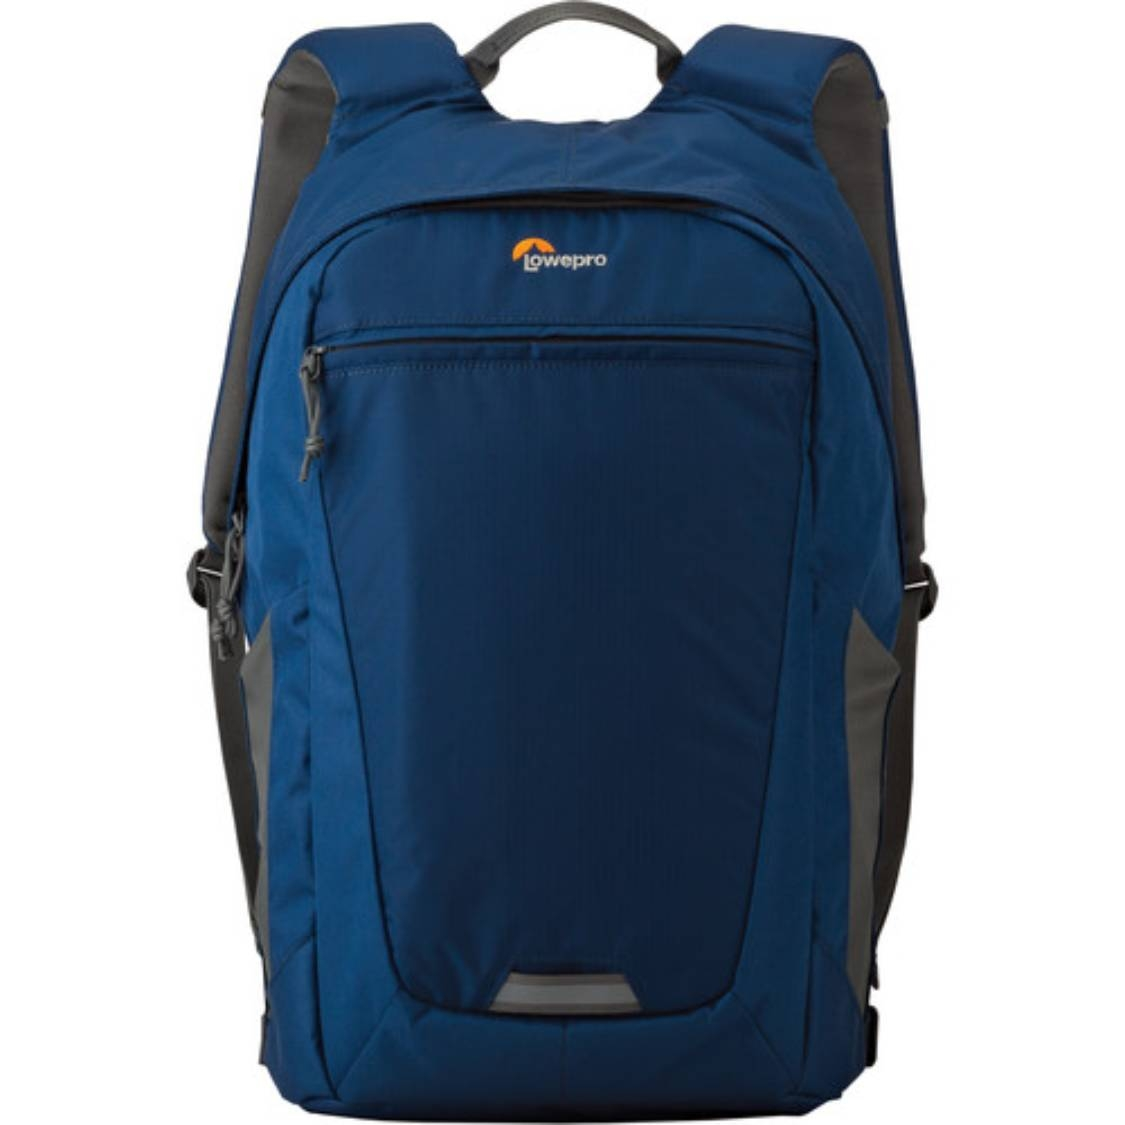 Lowepro Hatchback BP150 AW II (Blue)